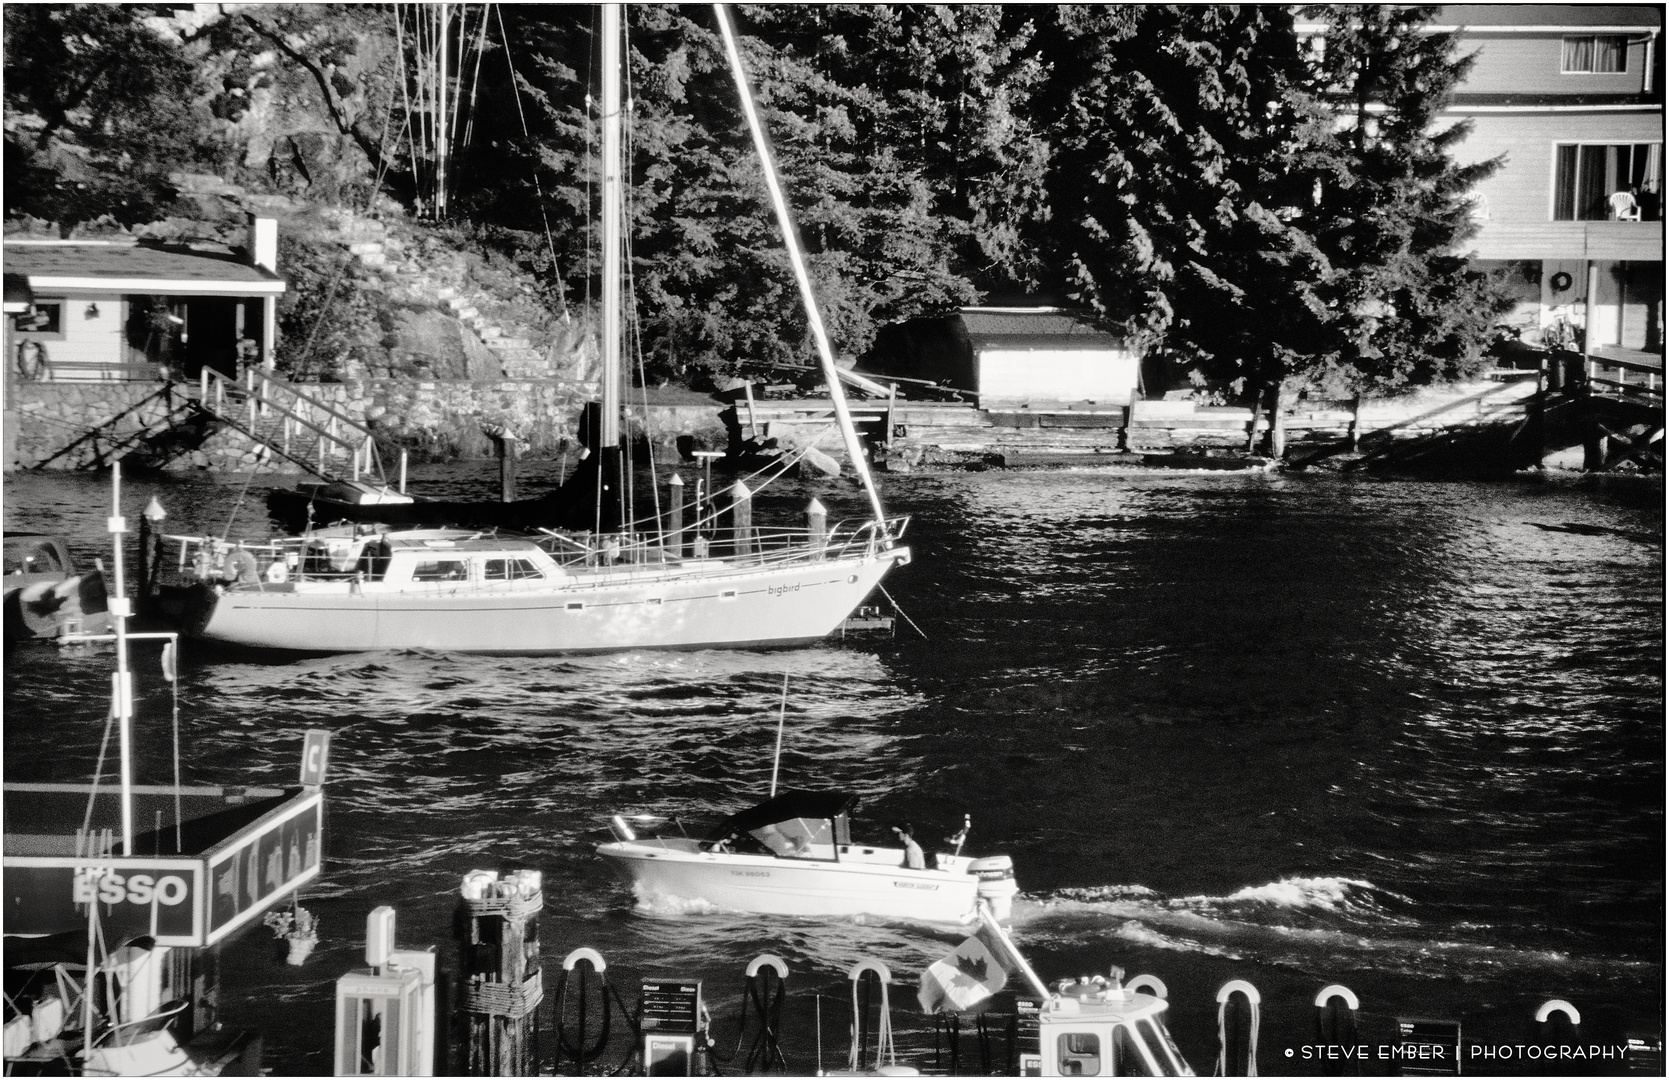 A Marina in West Vancouver